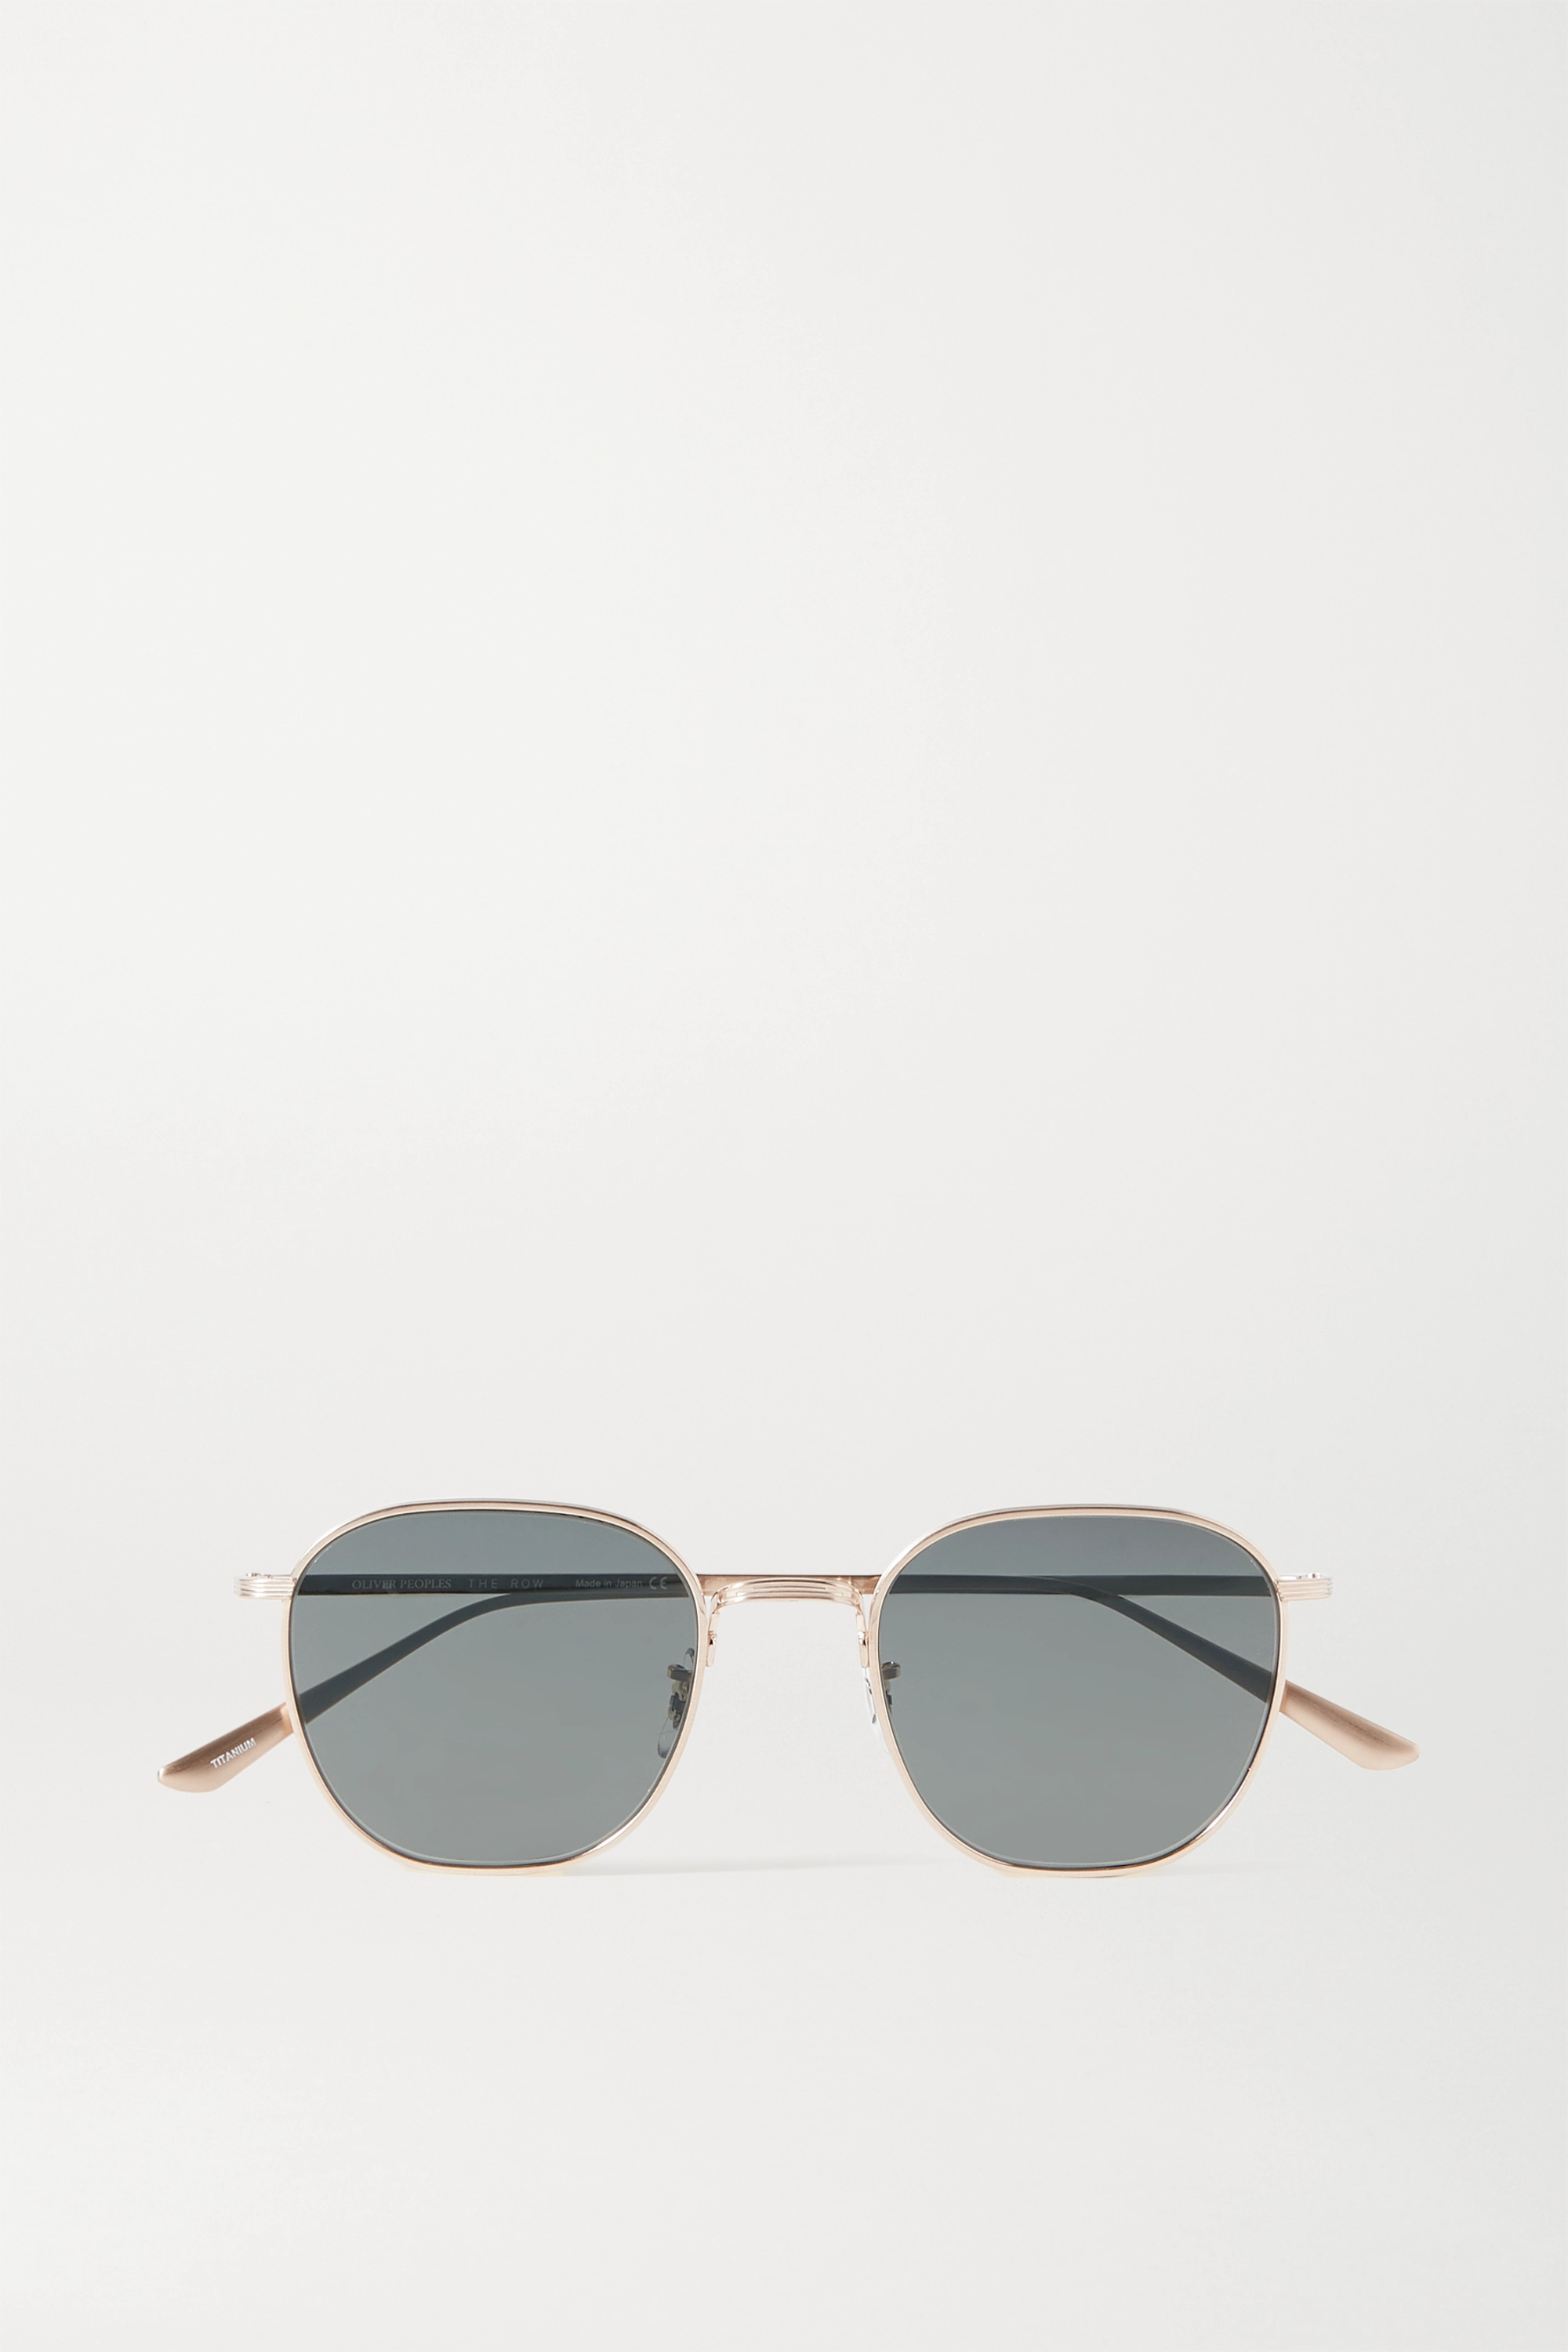 The Row + Oliver Peoples Board Meeting 2 round-frame gold-tone sunglasses